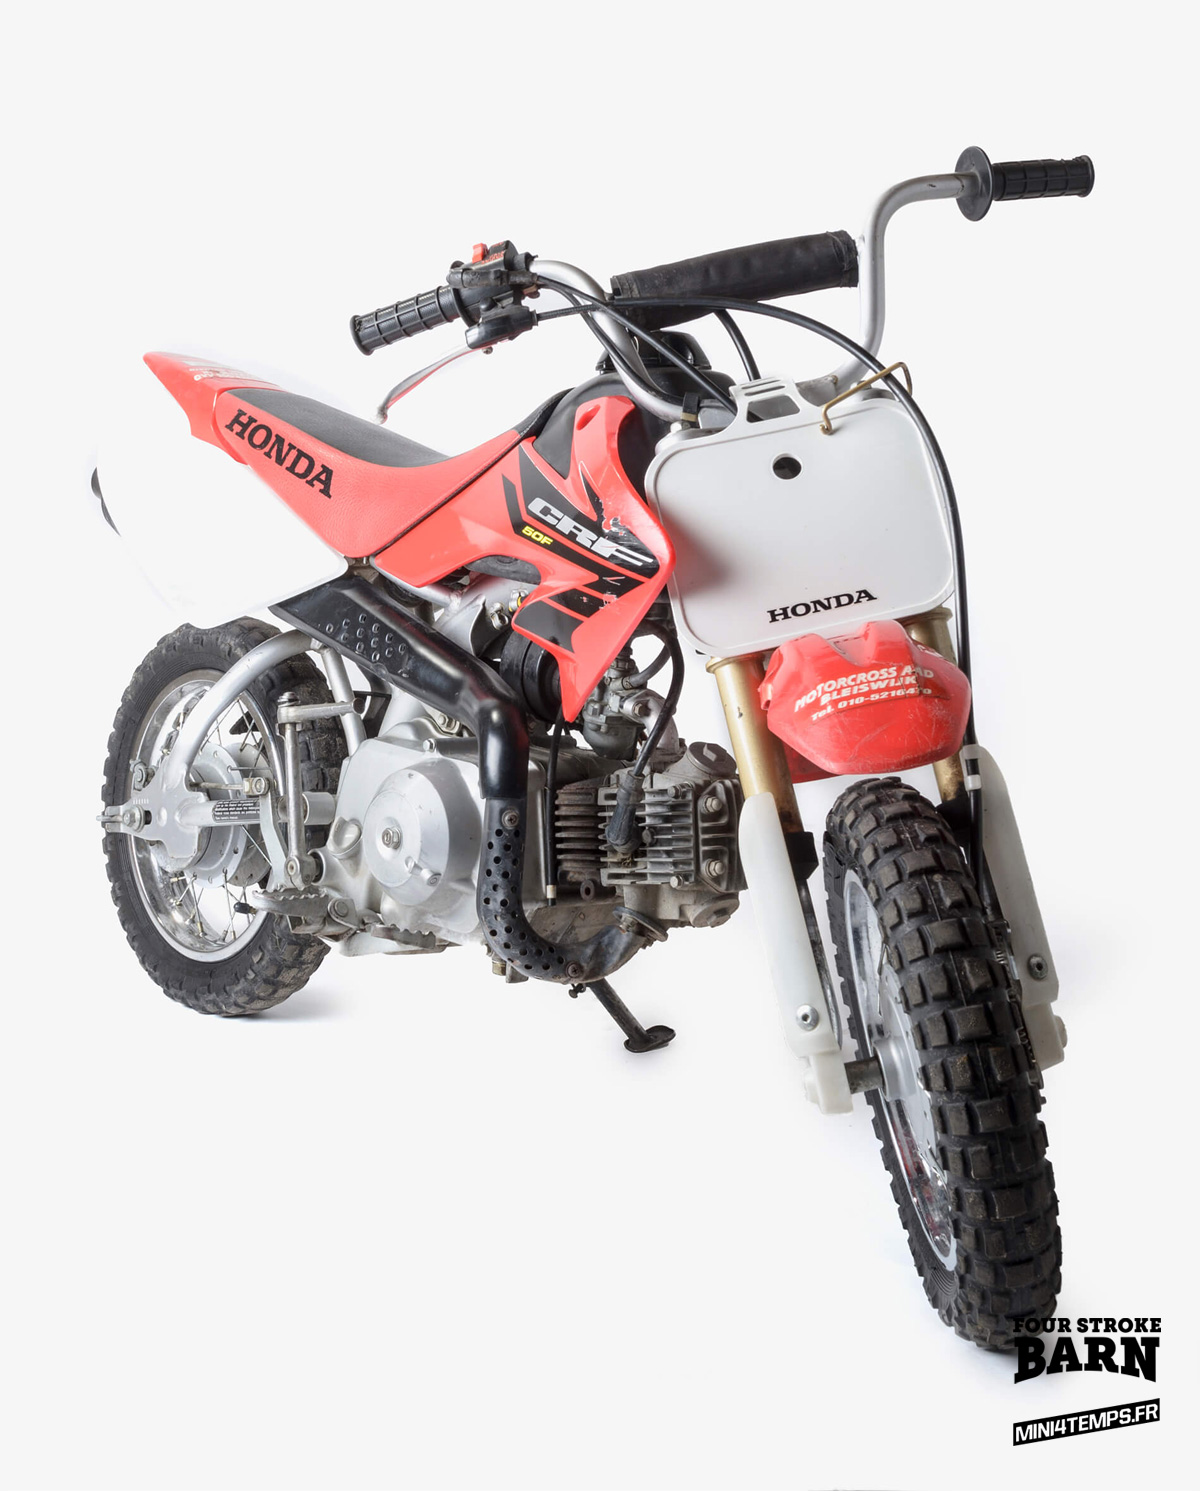 Les Honda CRF50 de Four Stroke Barn - mini4temps.fr